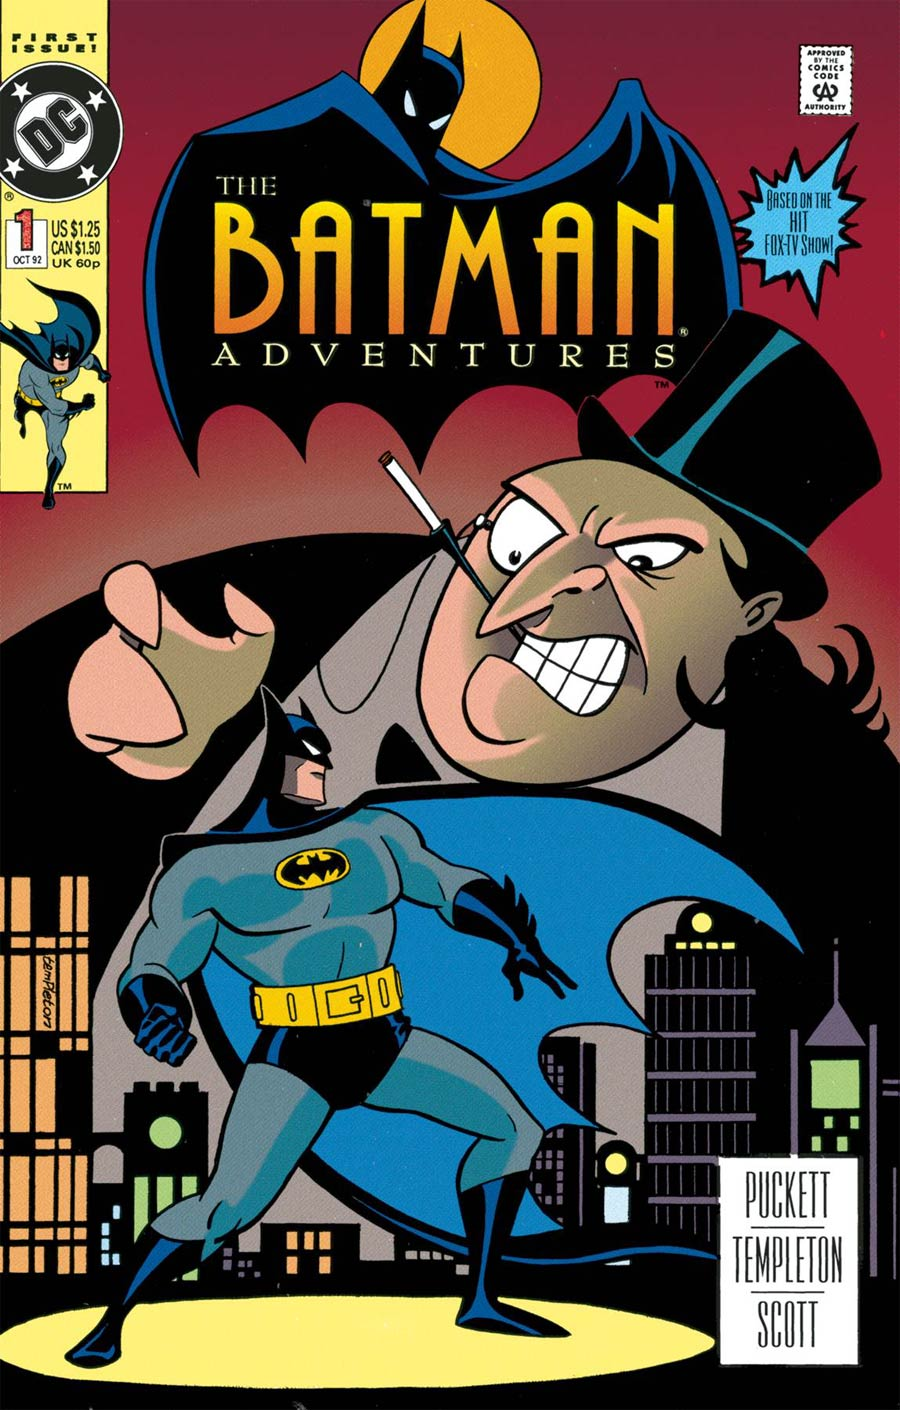 DC Classics: Batman Adventures #1 (2020)